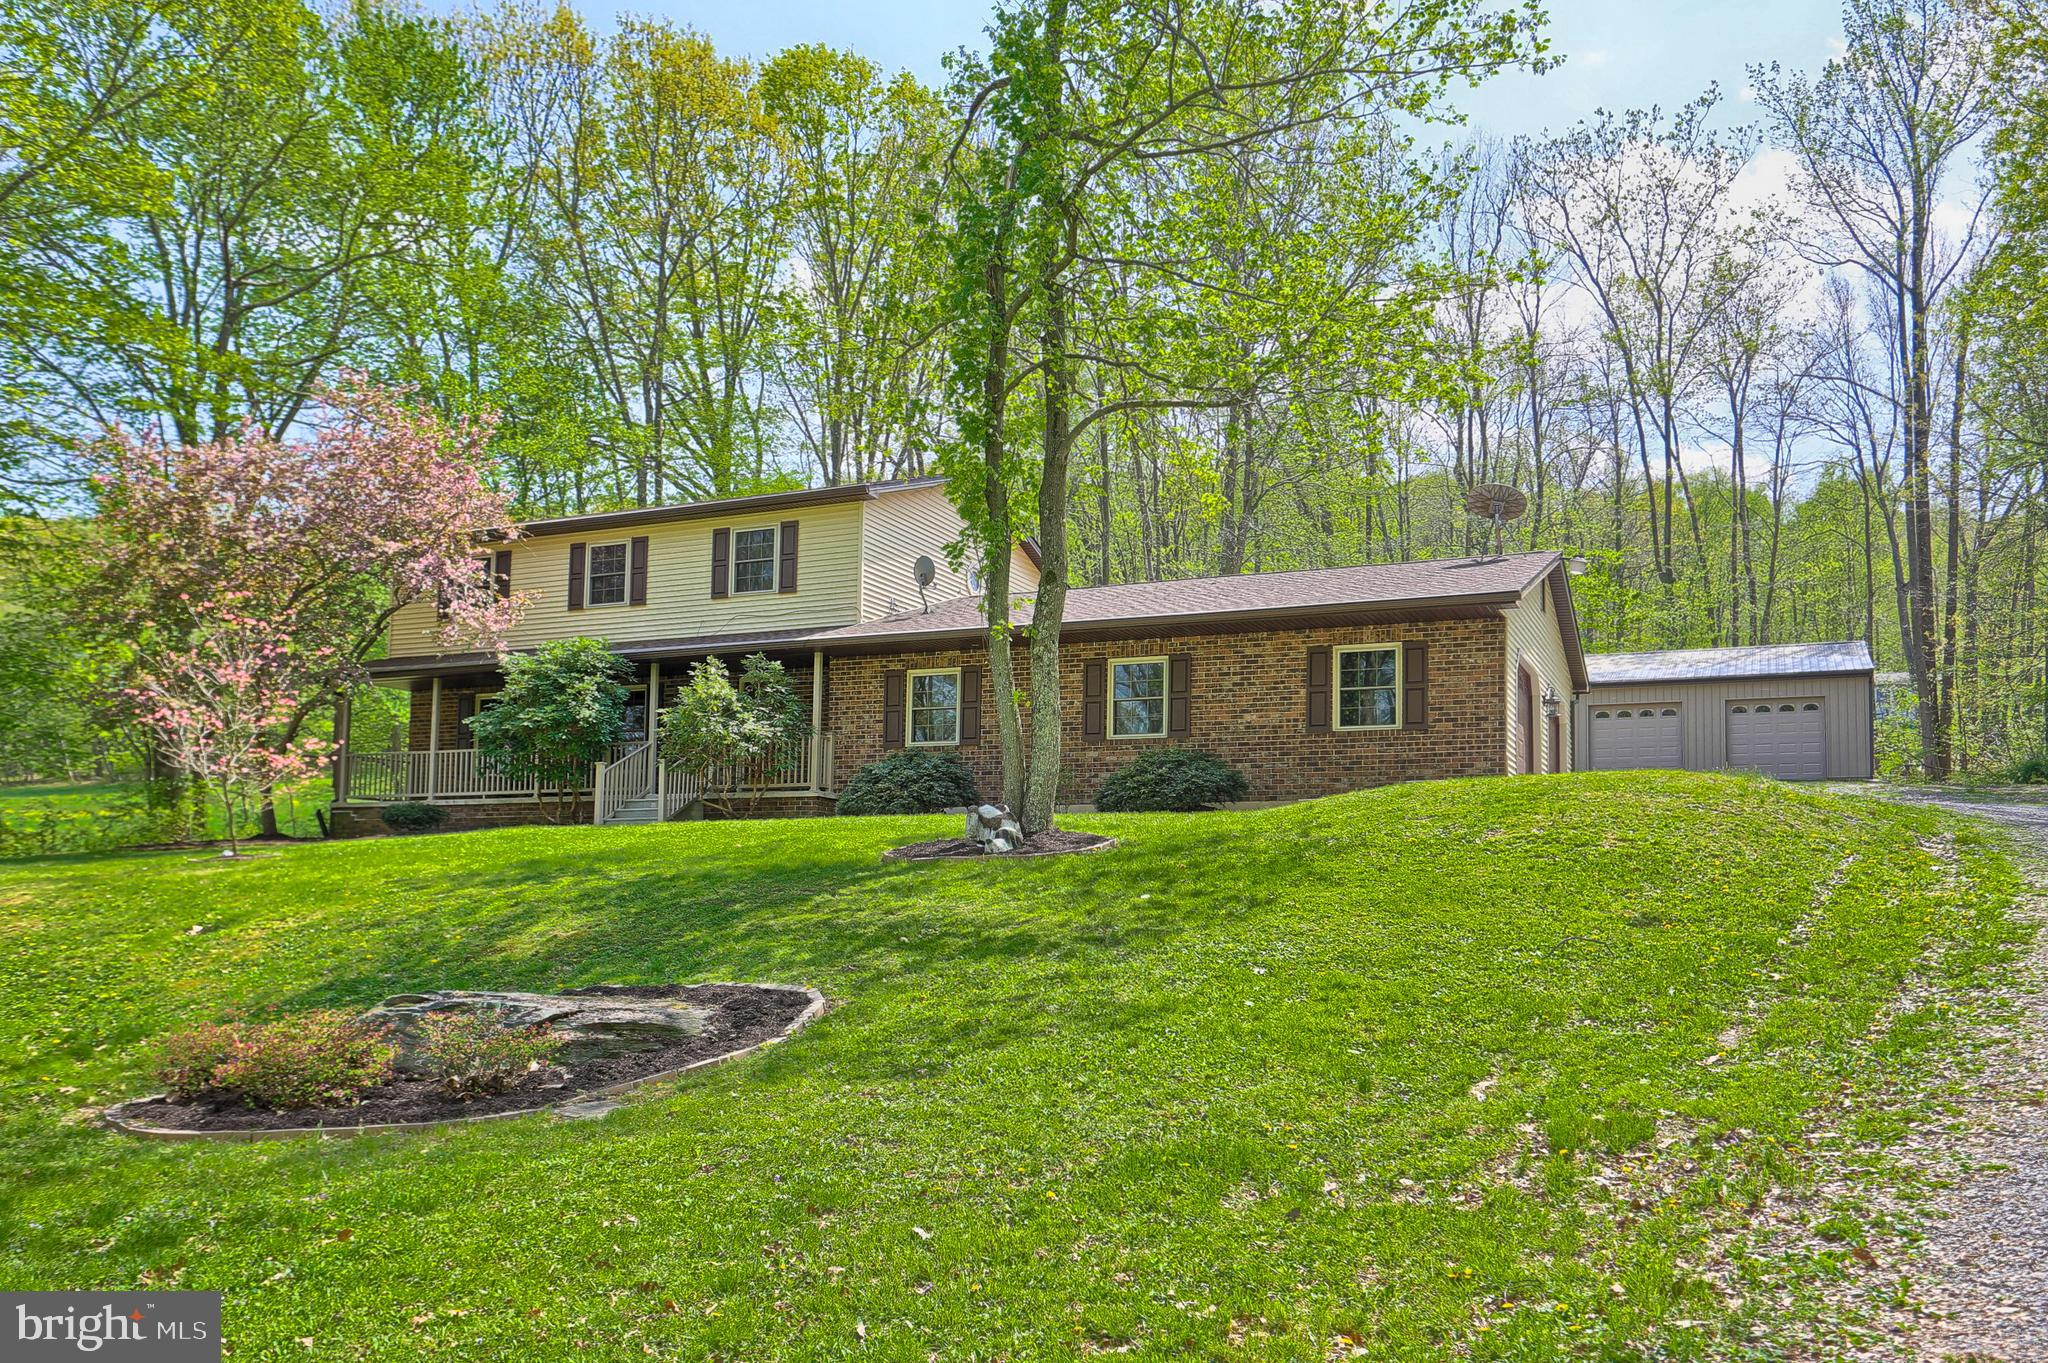 490 PEAK VIEW ROAD, YORK SPRINGS, PA 17372